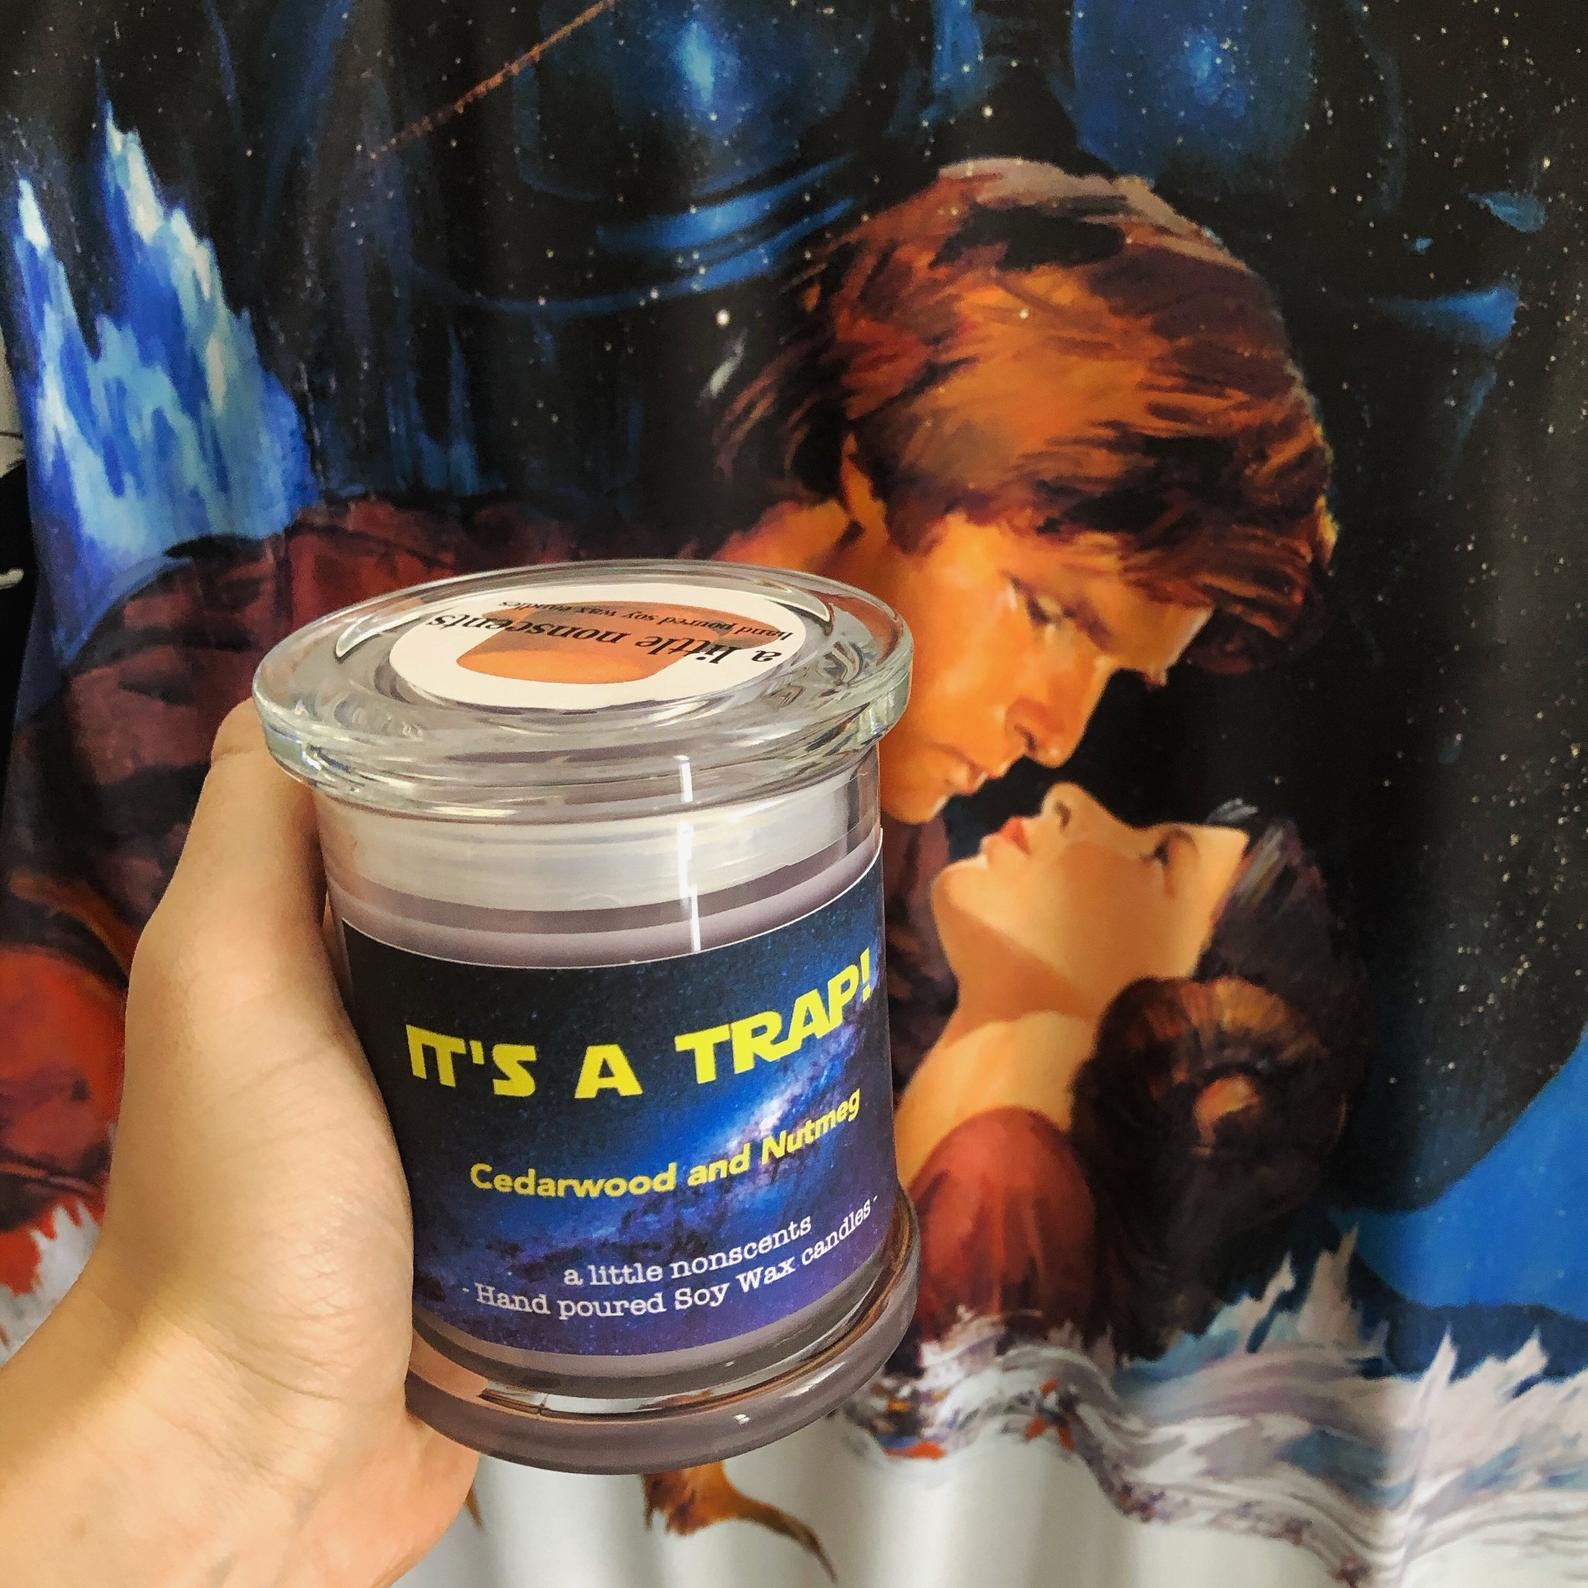 It's a trap! Star Wars inspired candle